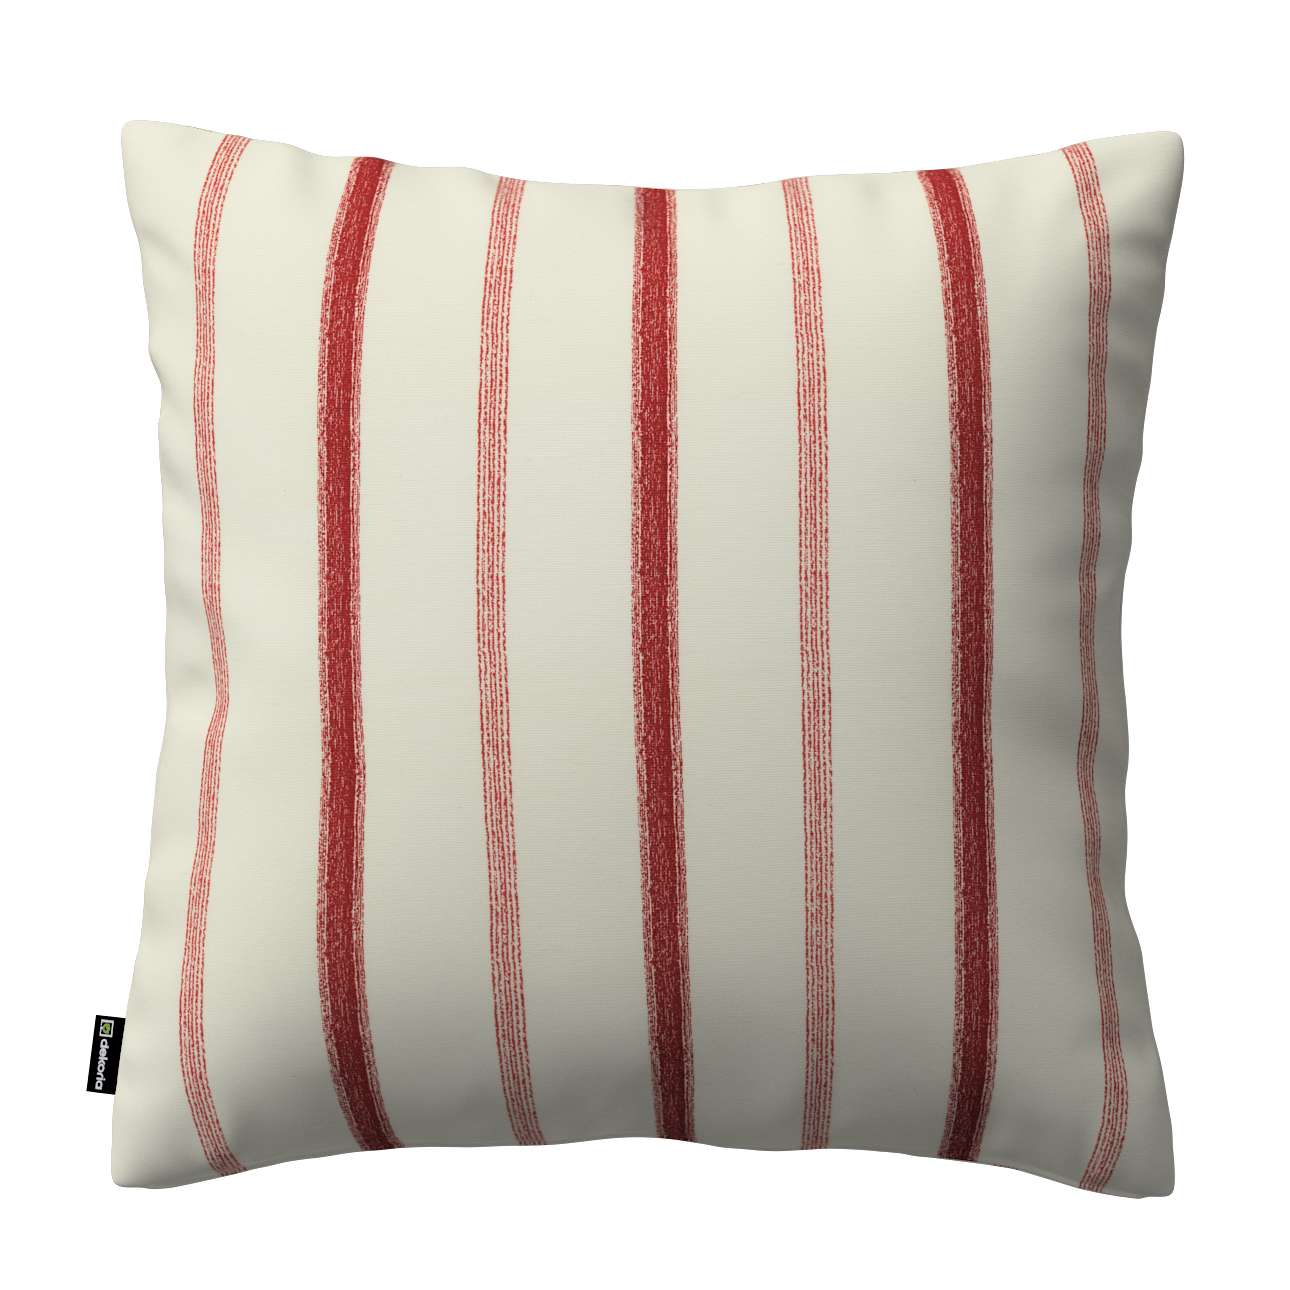 Kinga cushion cover in collection Avinon, fabric: 129-15